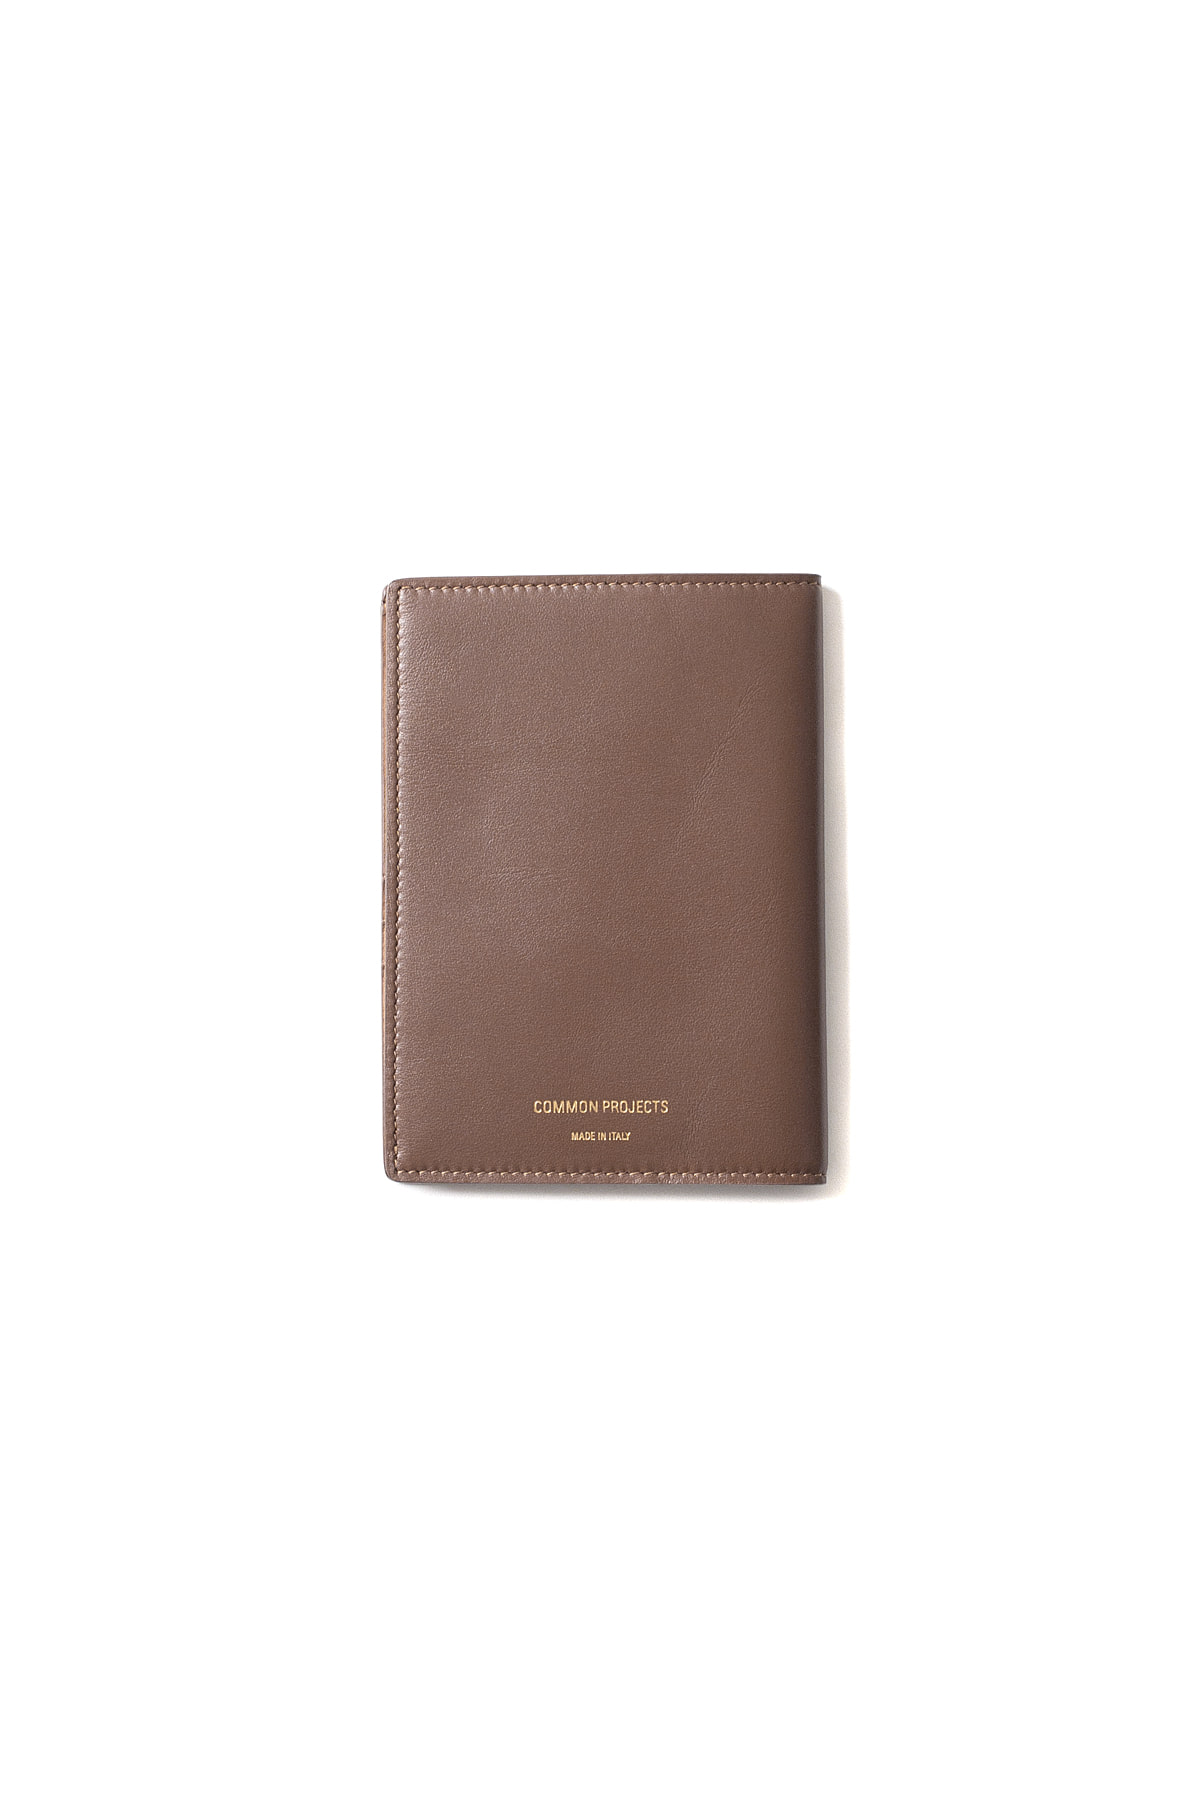 Common Projects : Passport Folio In Softy Leather (Brown)